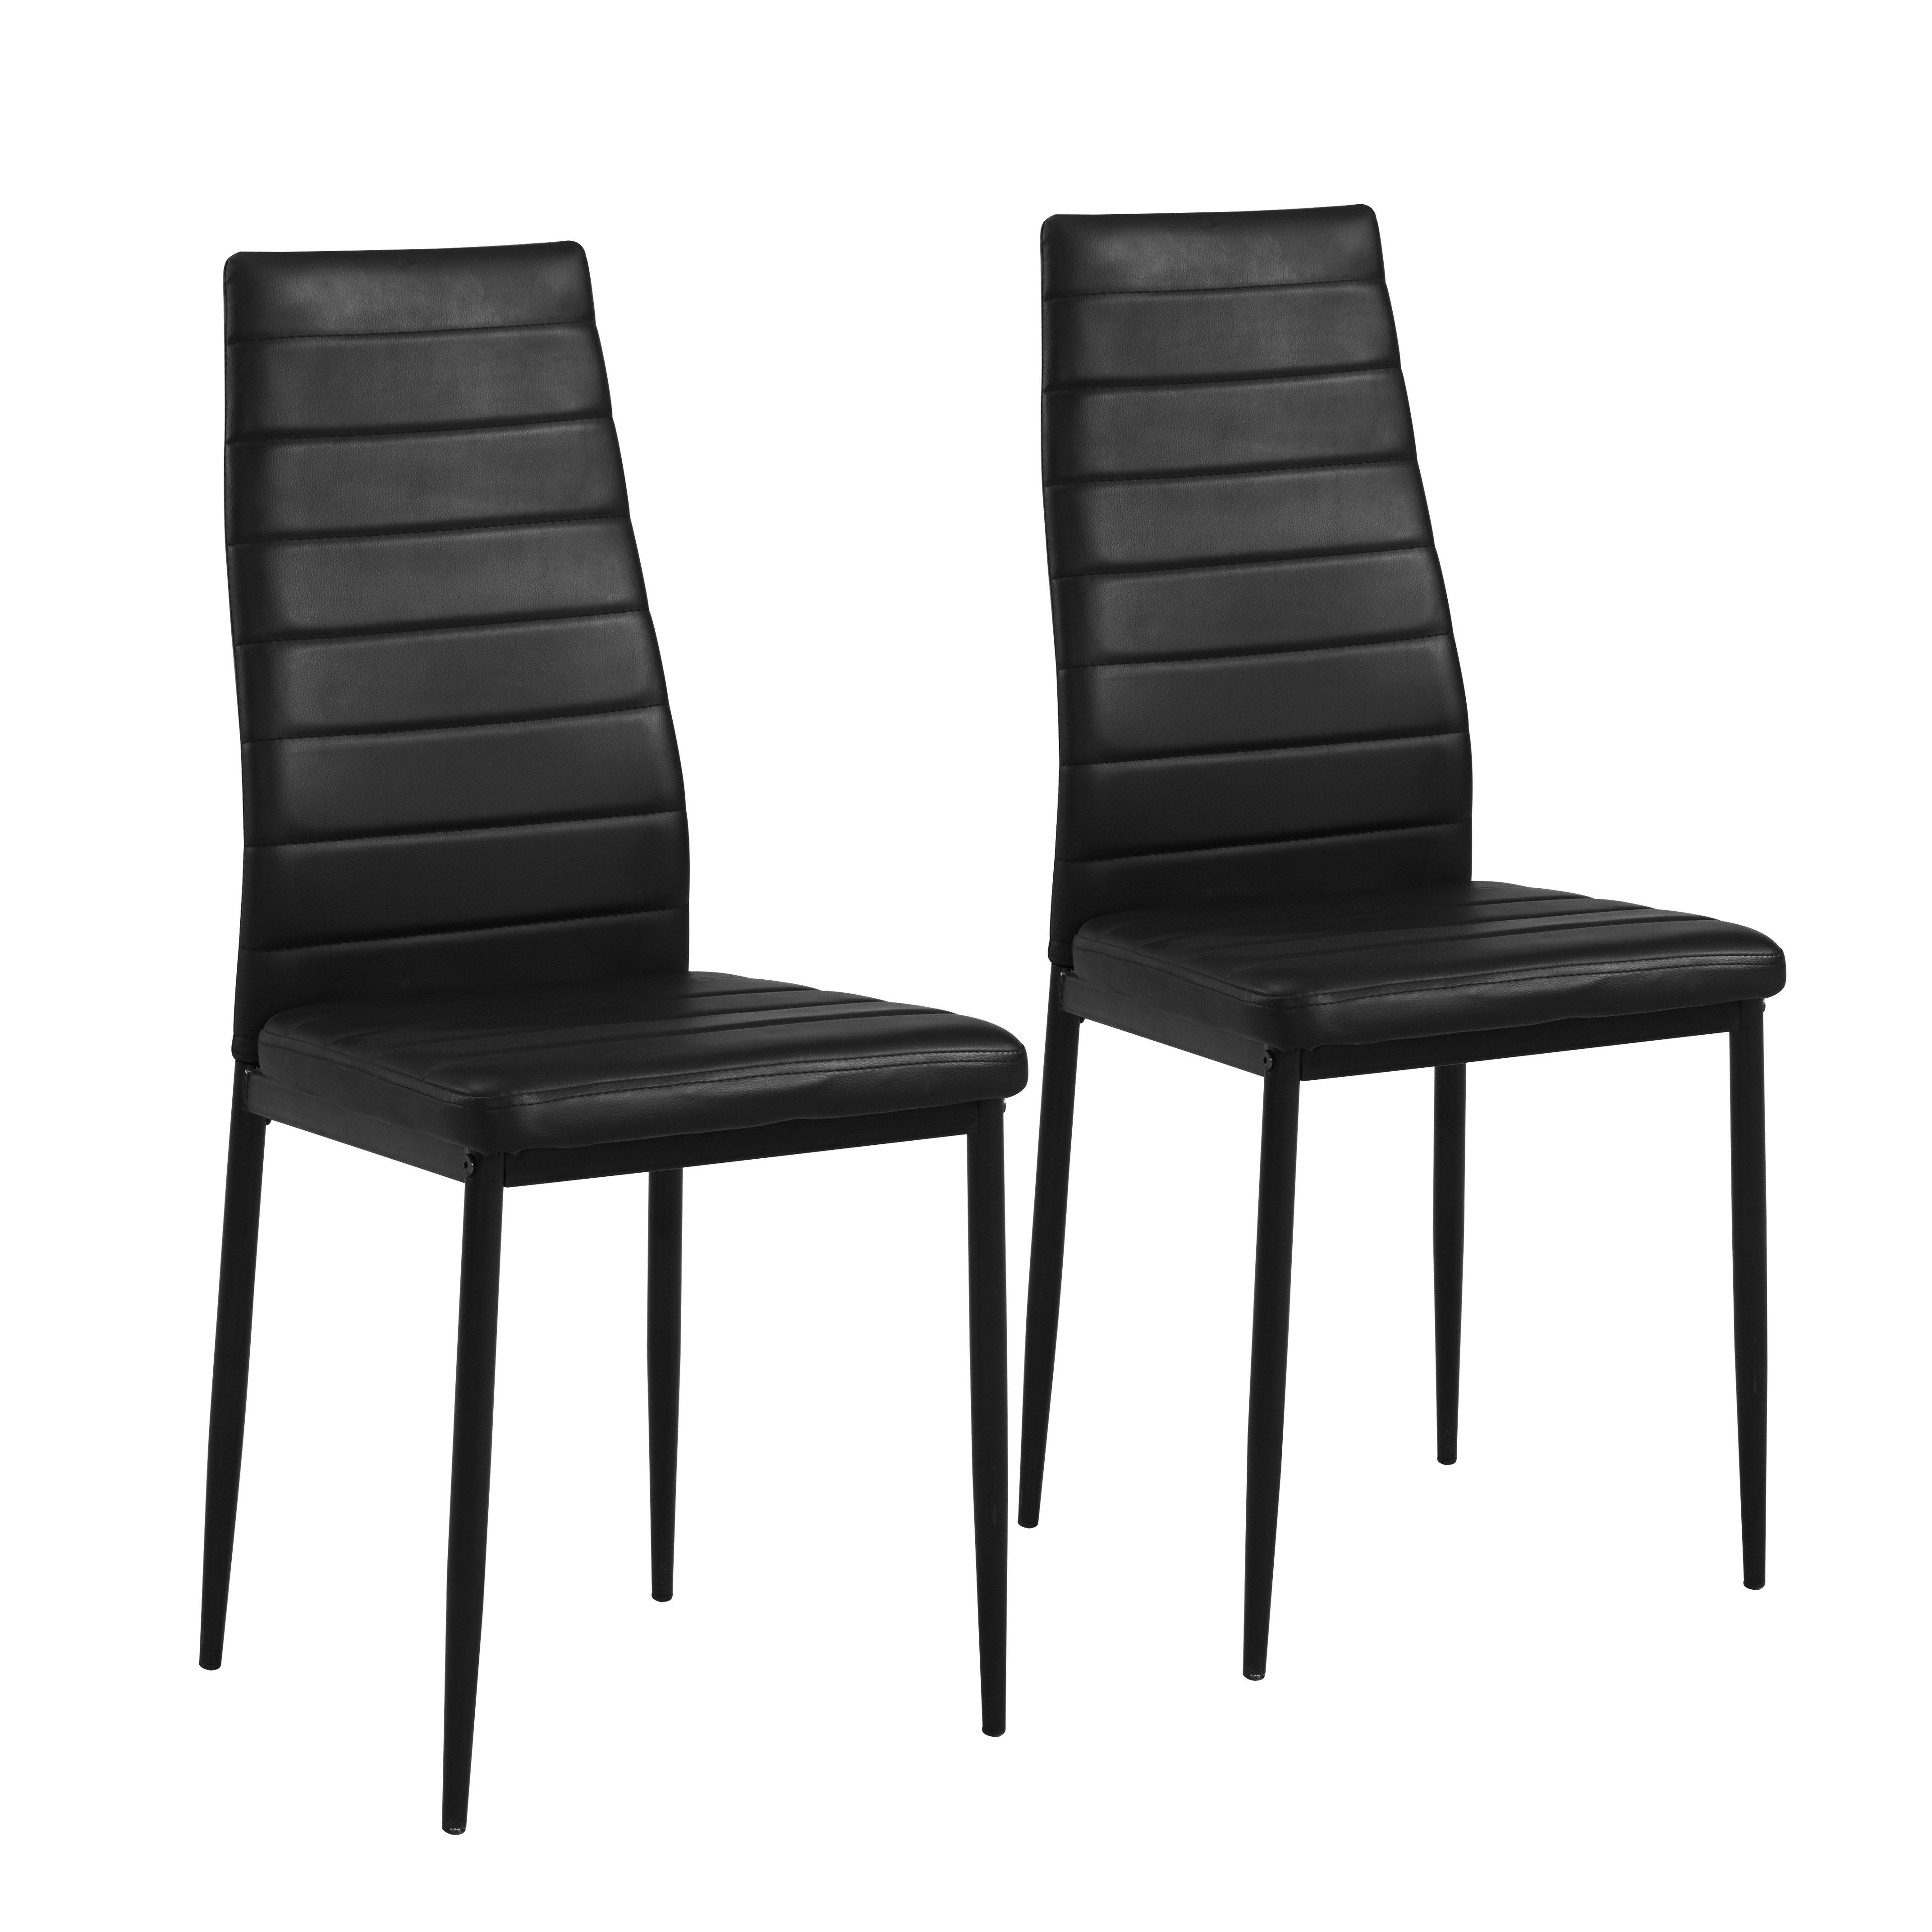 Mainstays Parsons Dining Chair, Set of 2, Black Faux Leather